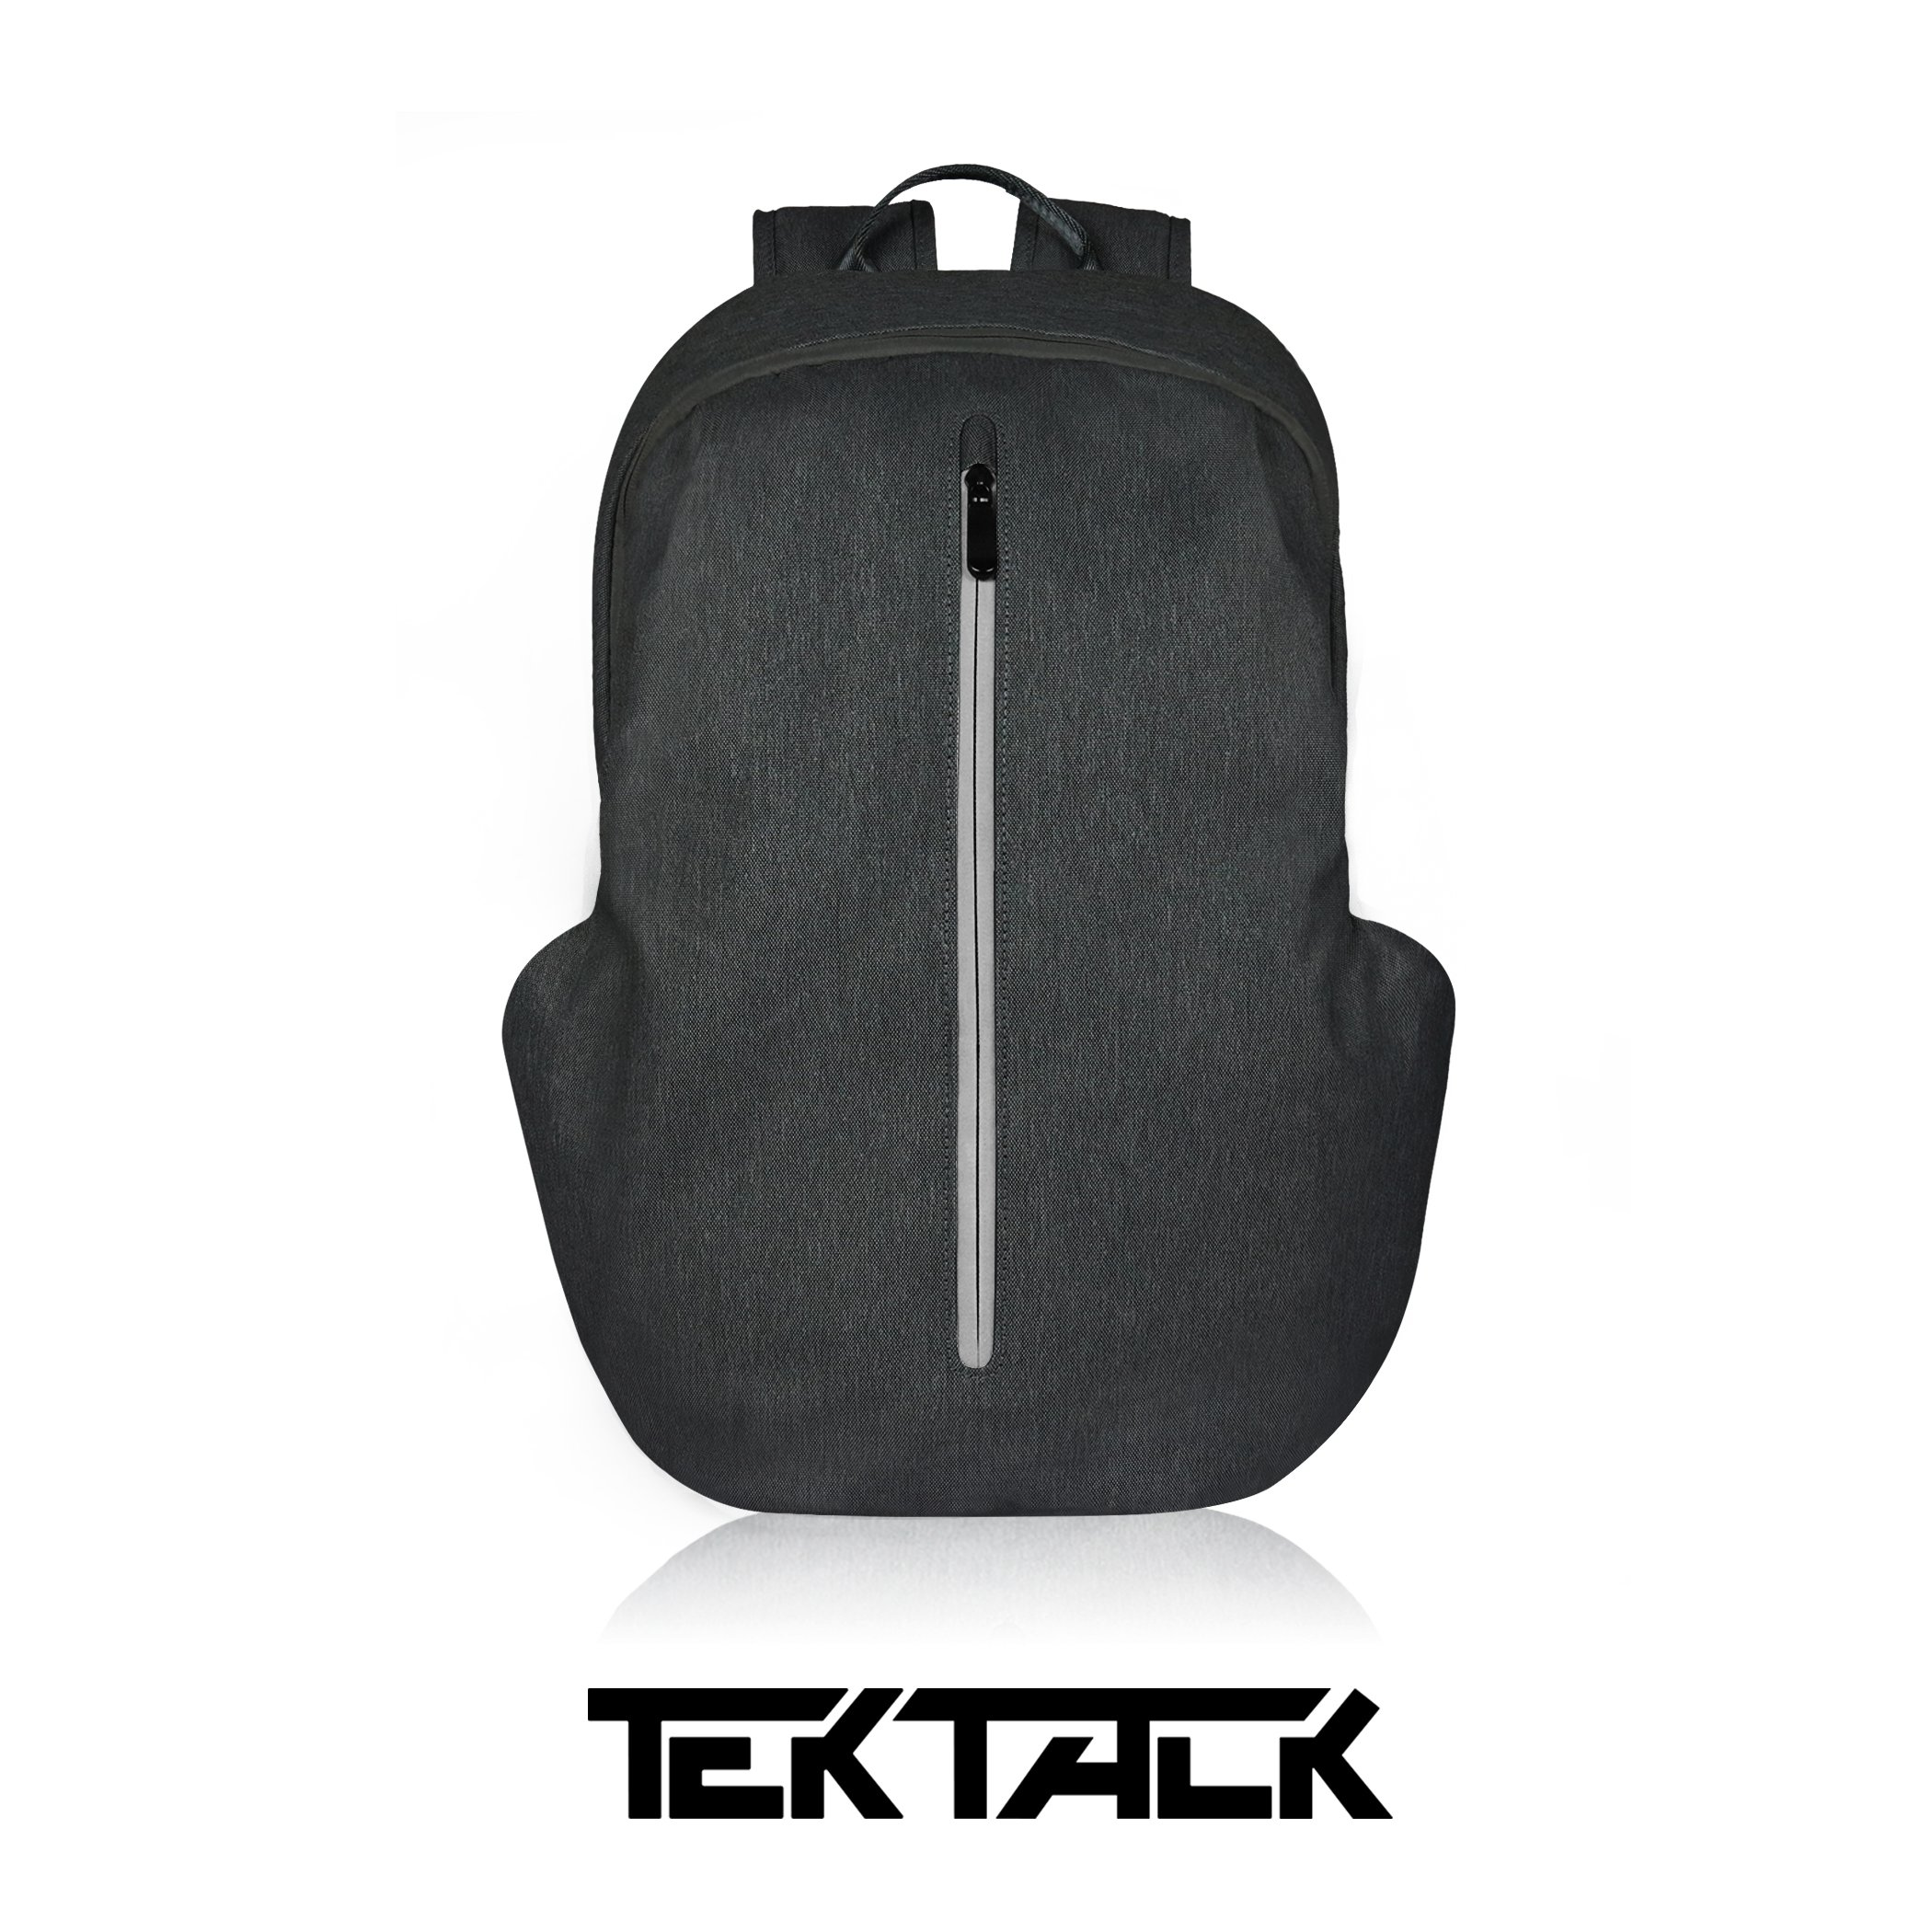 Tektalk Business Anti-theft Multifunctional Laptop Backpack, with USB Cable and Coded Lock, Durable & Lightweight, Suitable for Laptops up to 15.6 inches, for School / Travel / Work (Black)